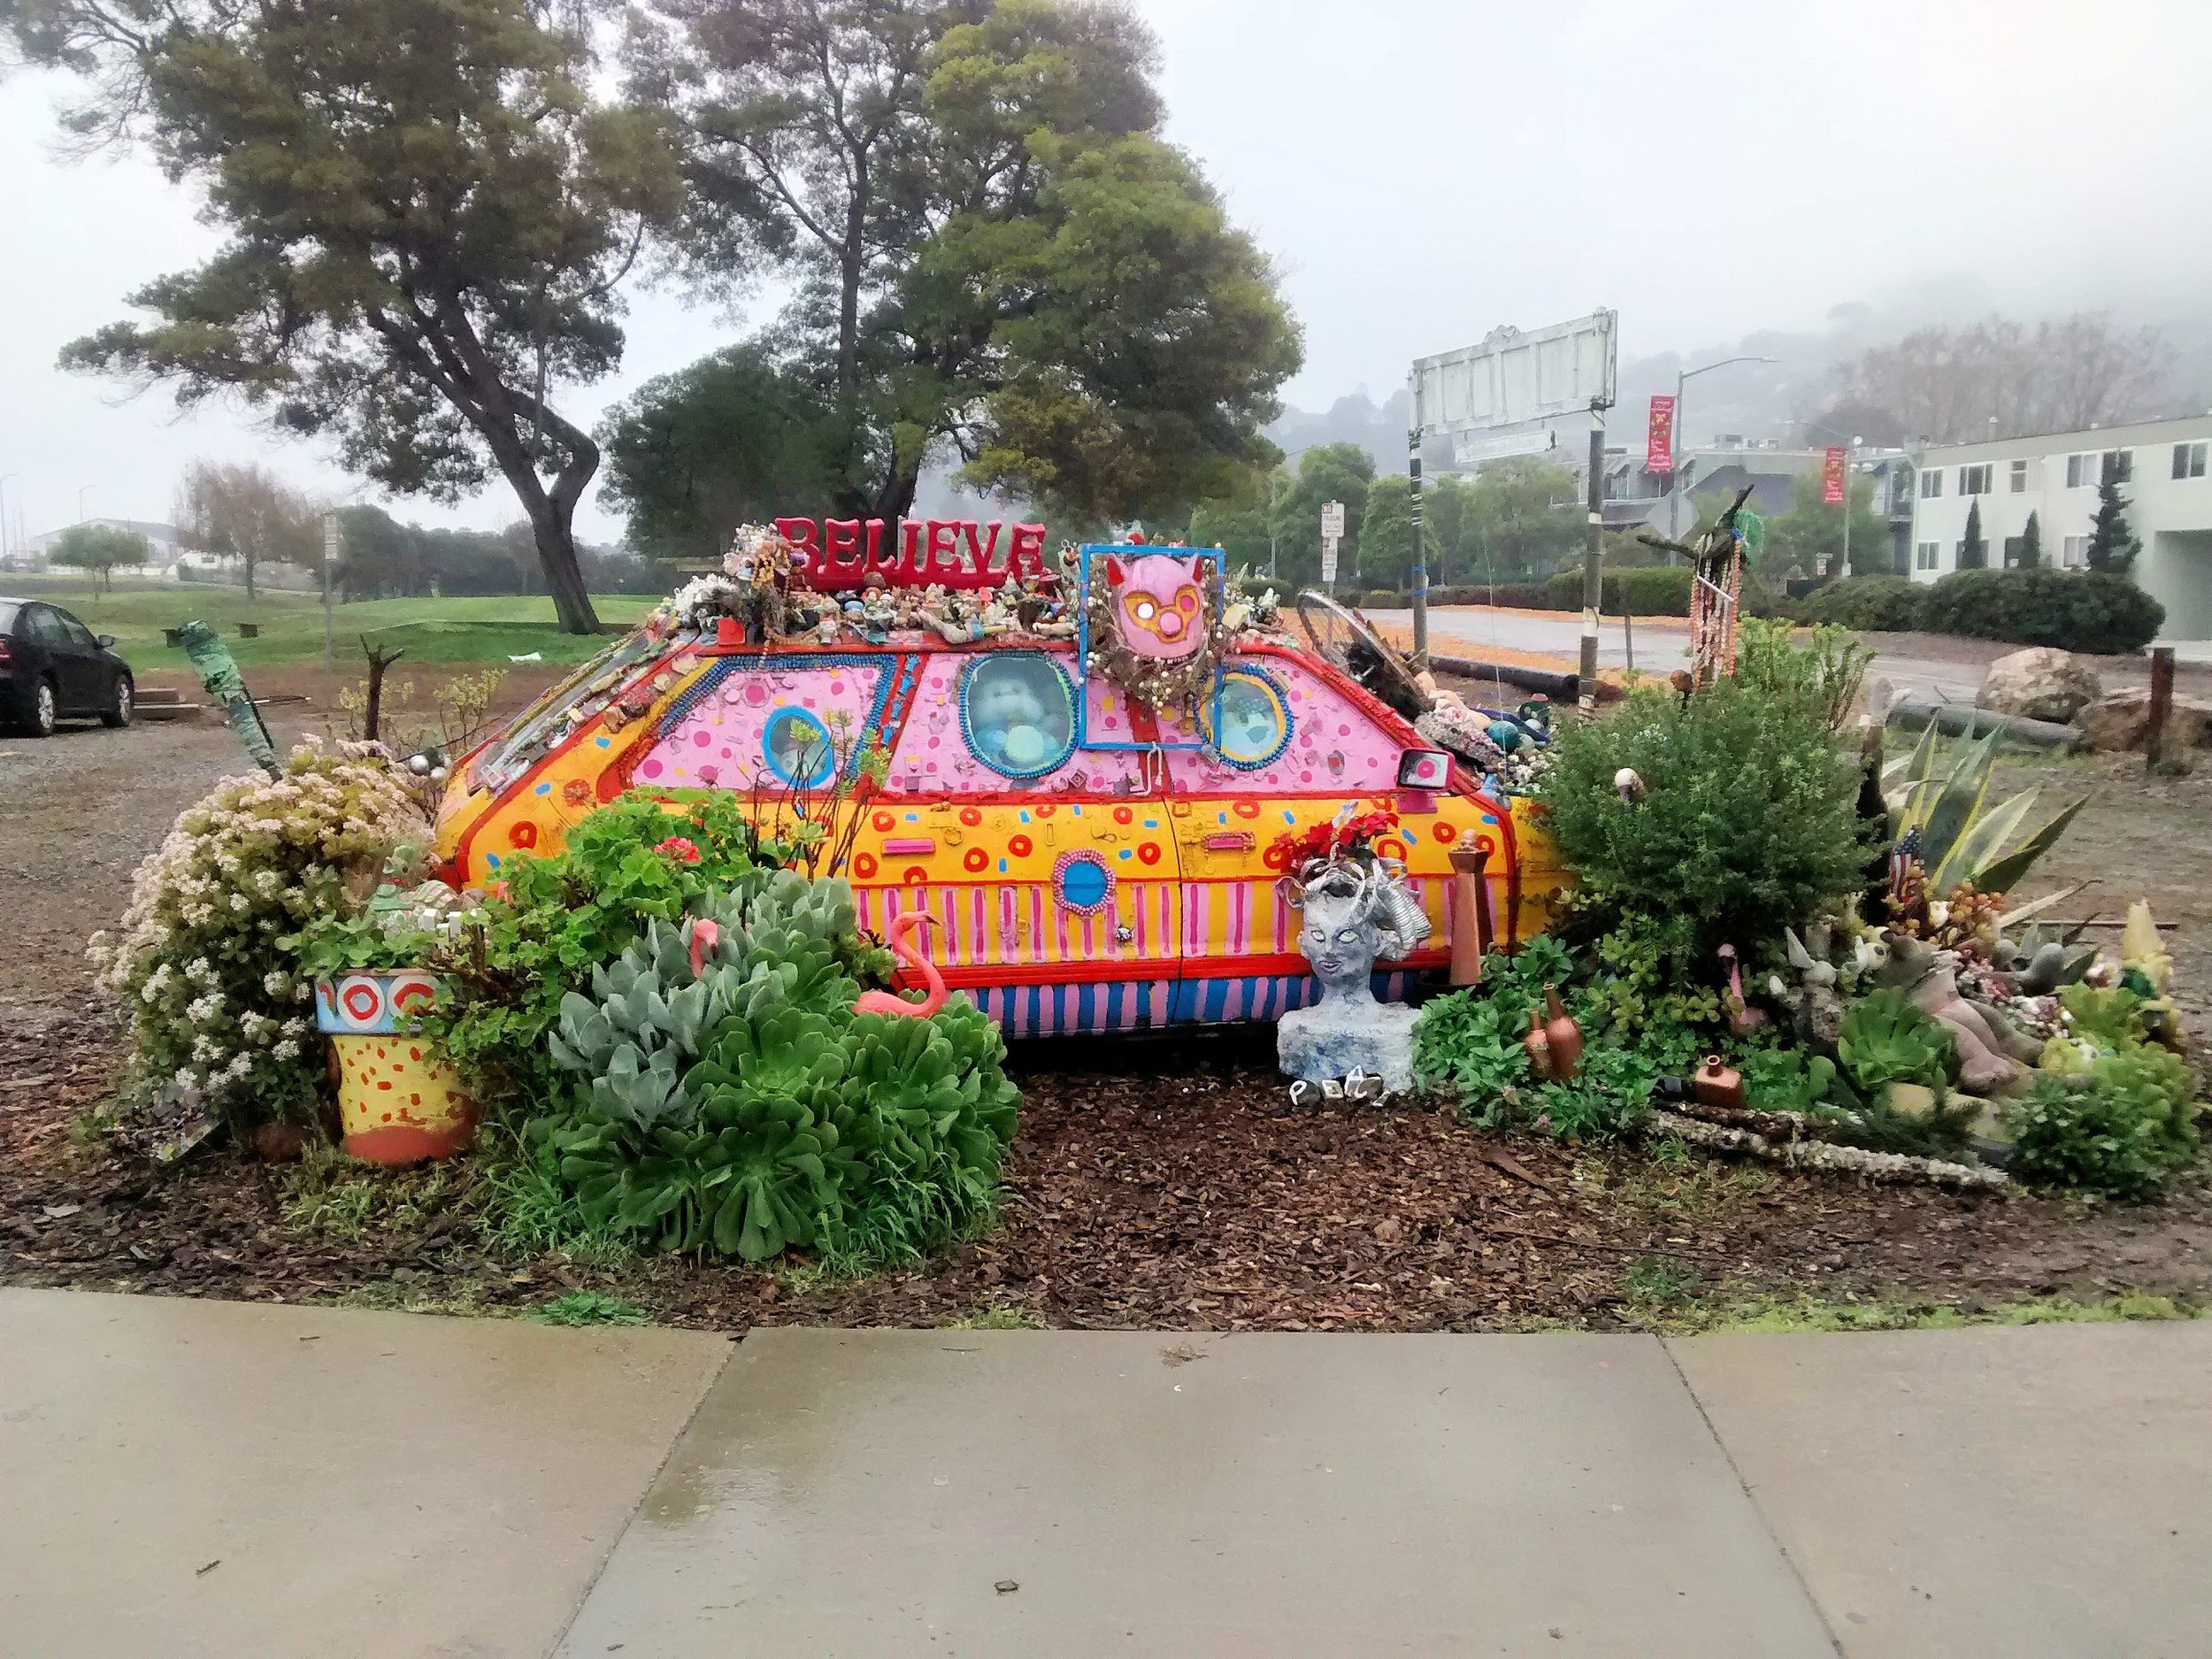 The ArtCar in all its glory. Photo by Heather Wilcoxon